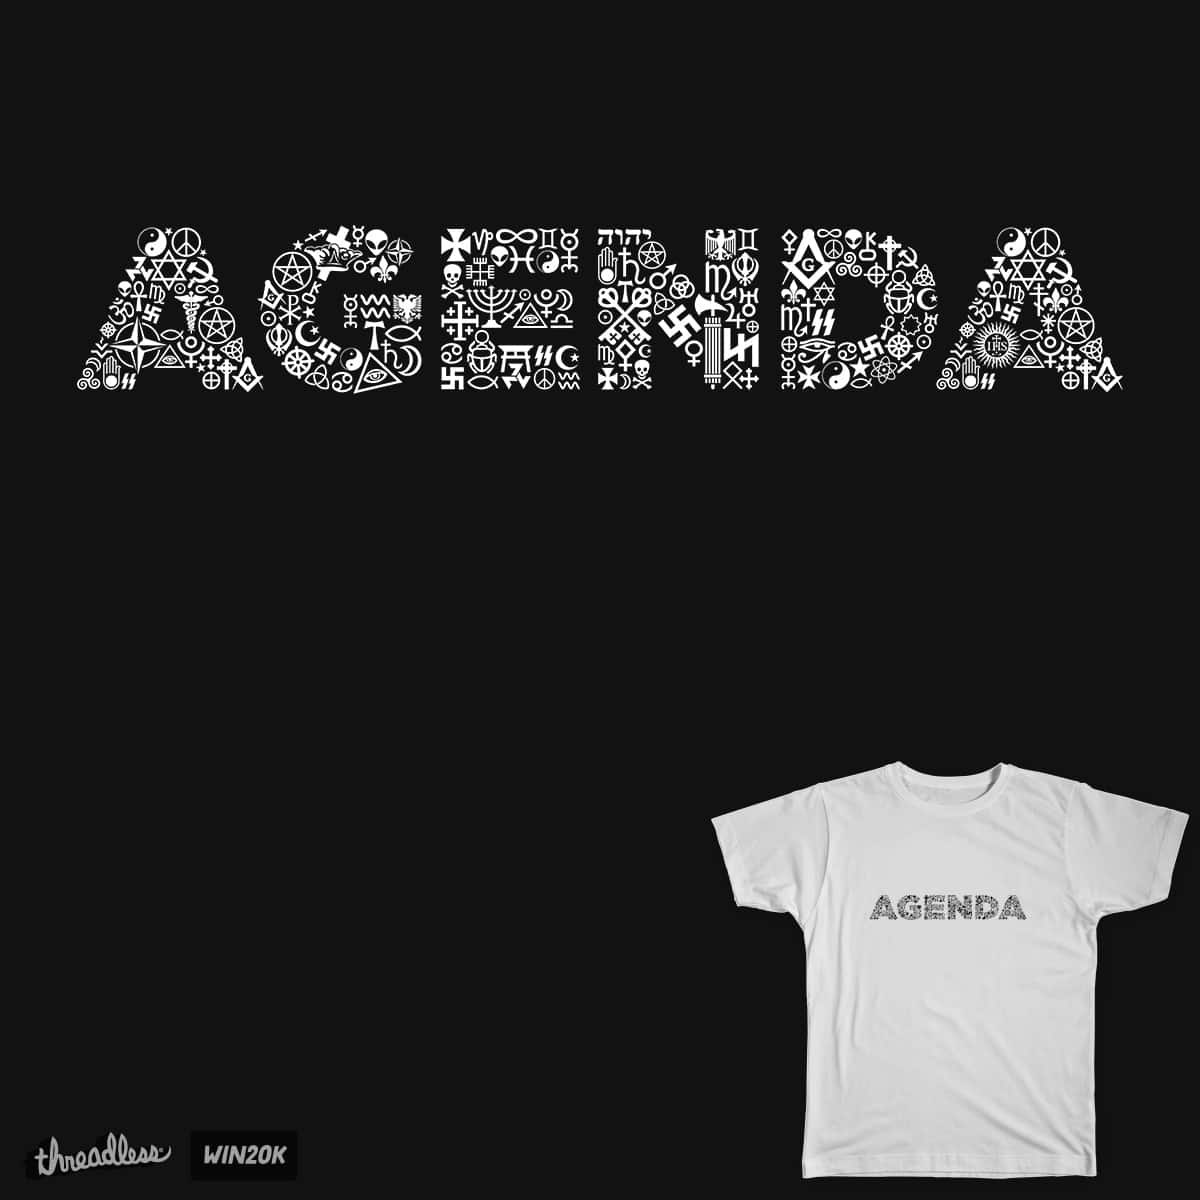 Occult Agenda T-shirt by spaghettiarts on Threadless